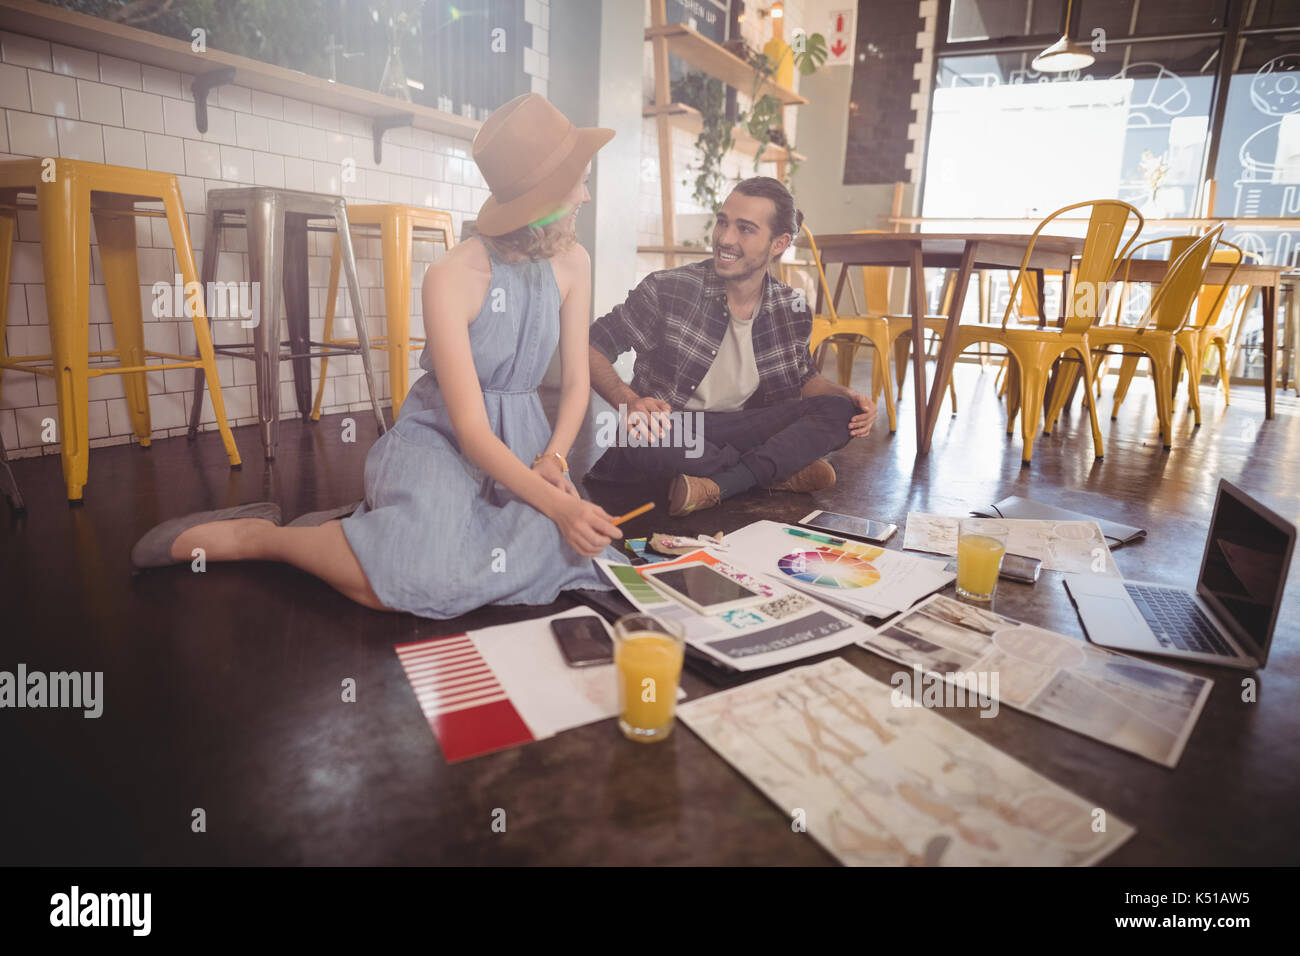 Smiling young professionals sitting with sheets and technologies on floor at coffee shop - Stock Image